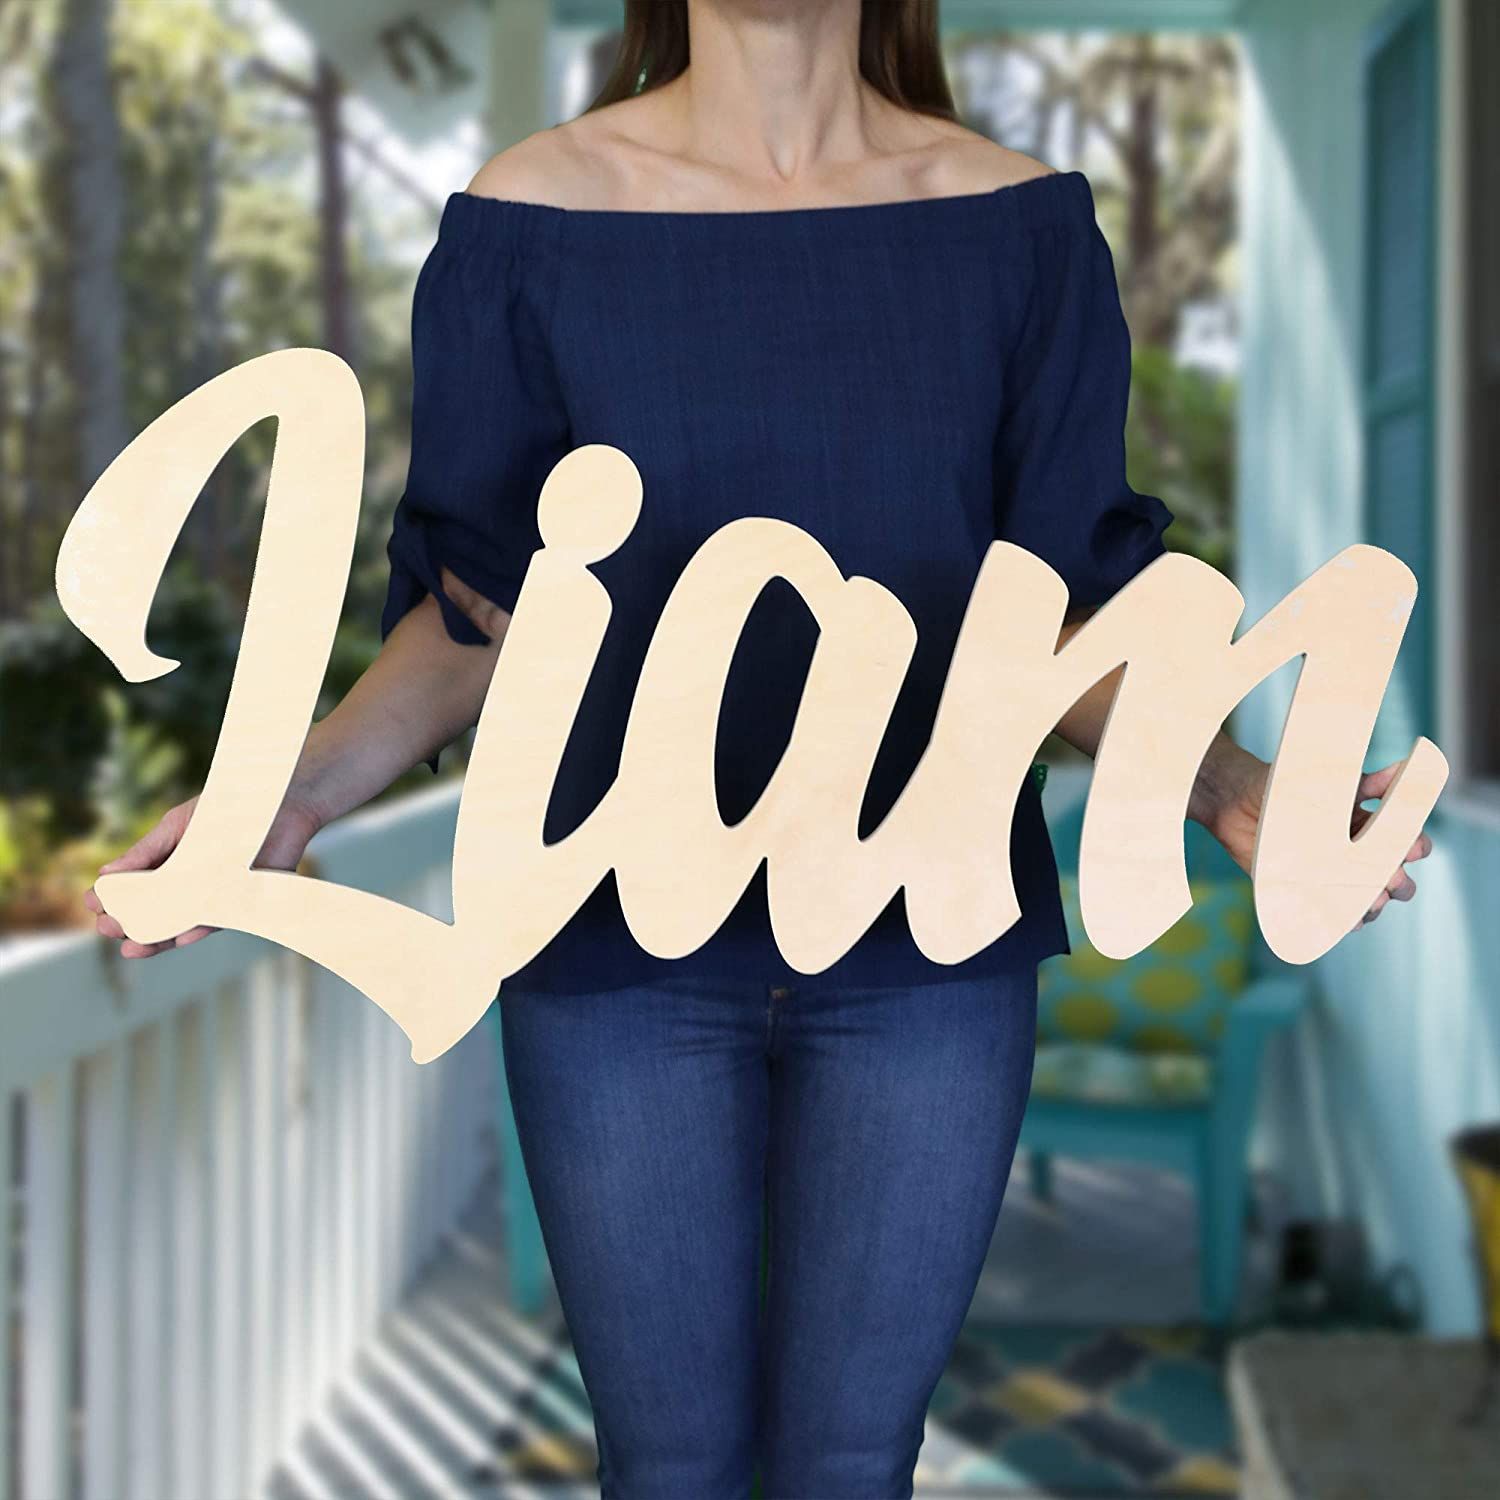 above a crib LIAM Font Letters Baby Name Plaque PAINTED nursery name nursery decor wooden wall art Custom Personalized Wooden Name Sign 12-55 WIDE